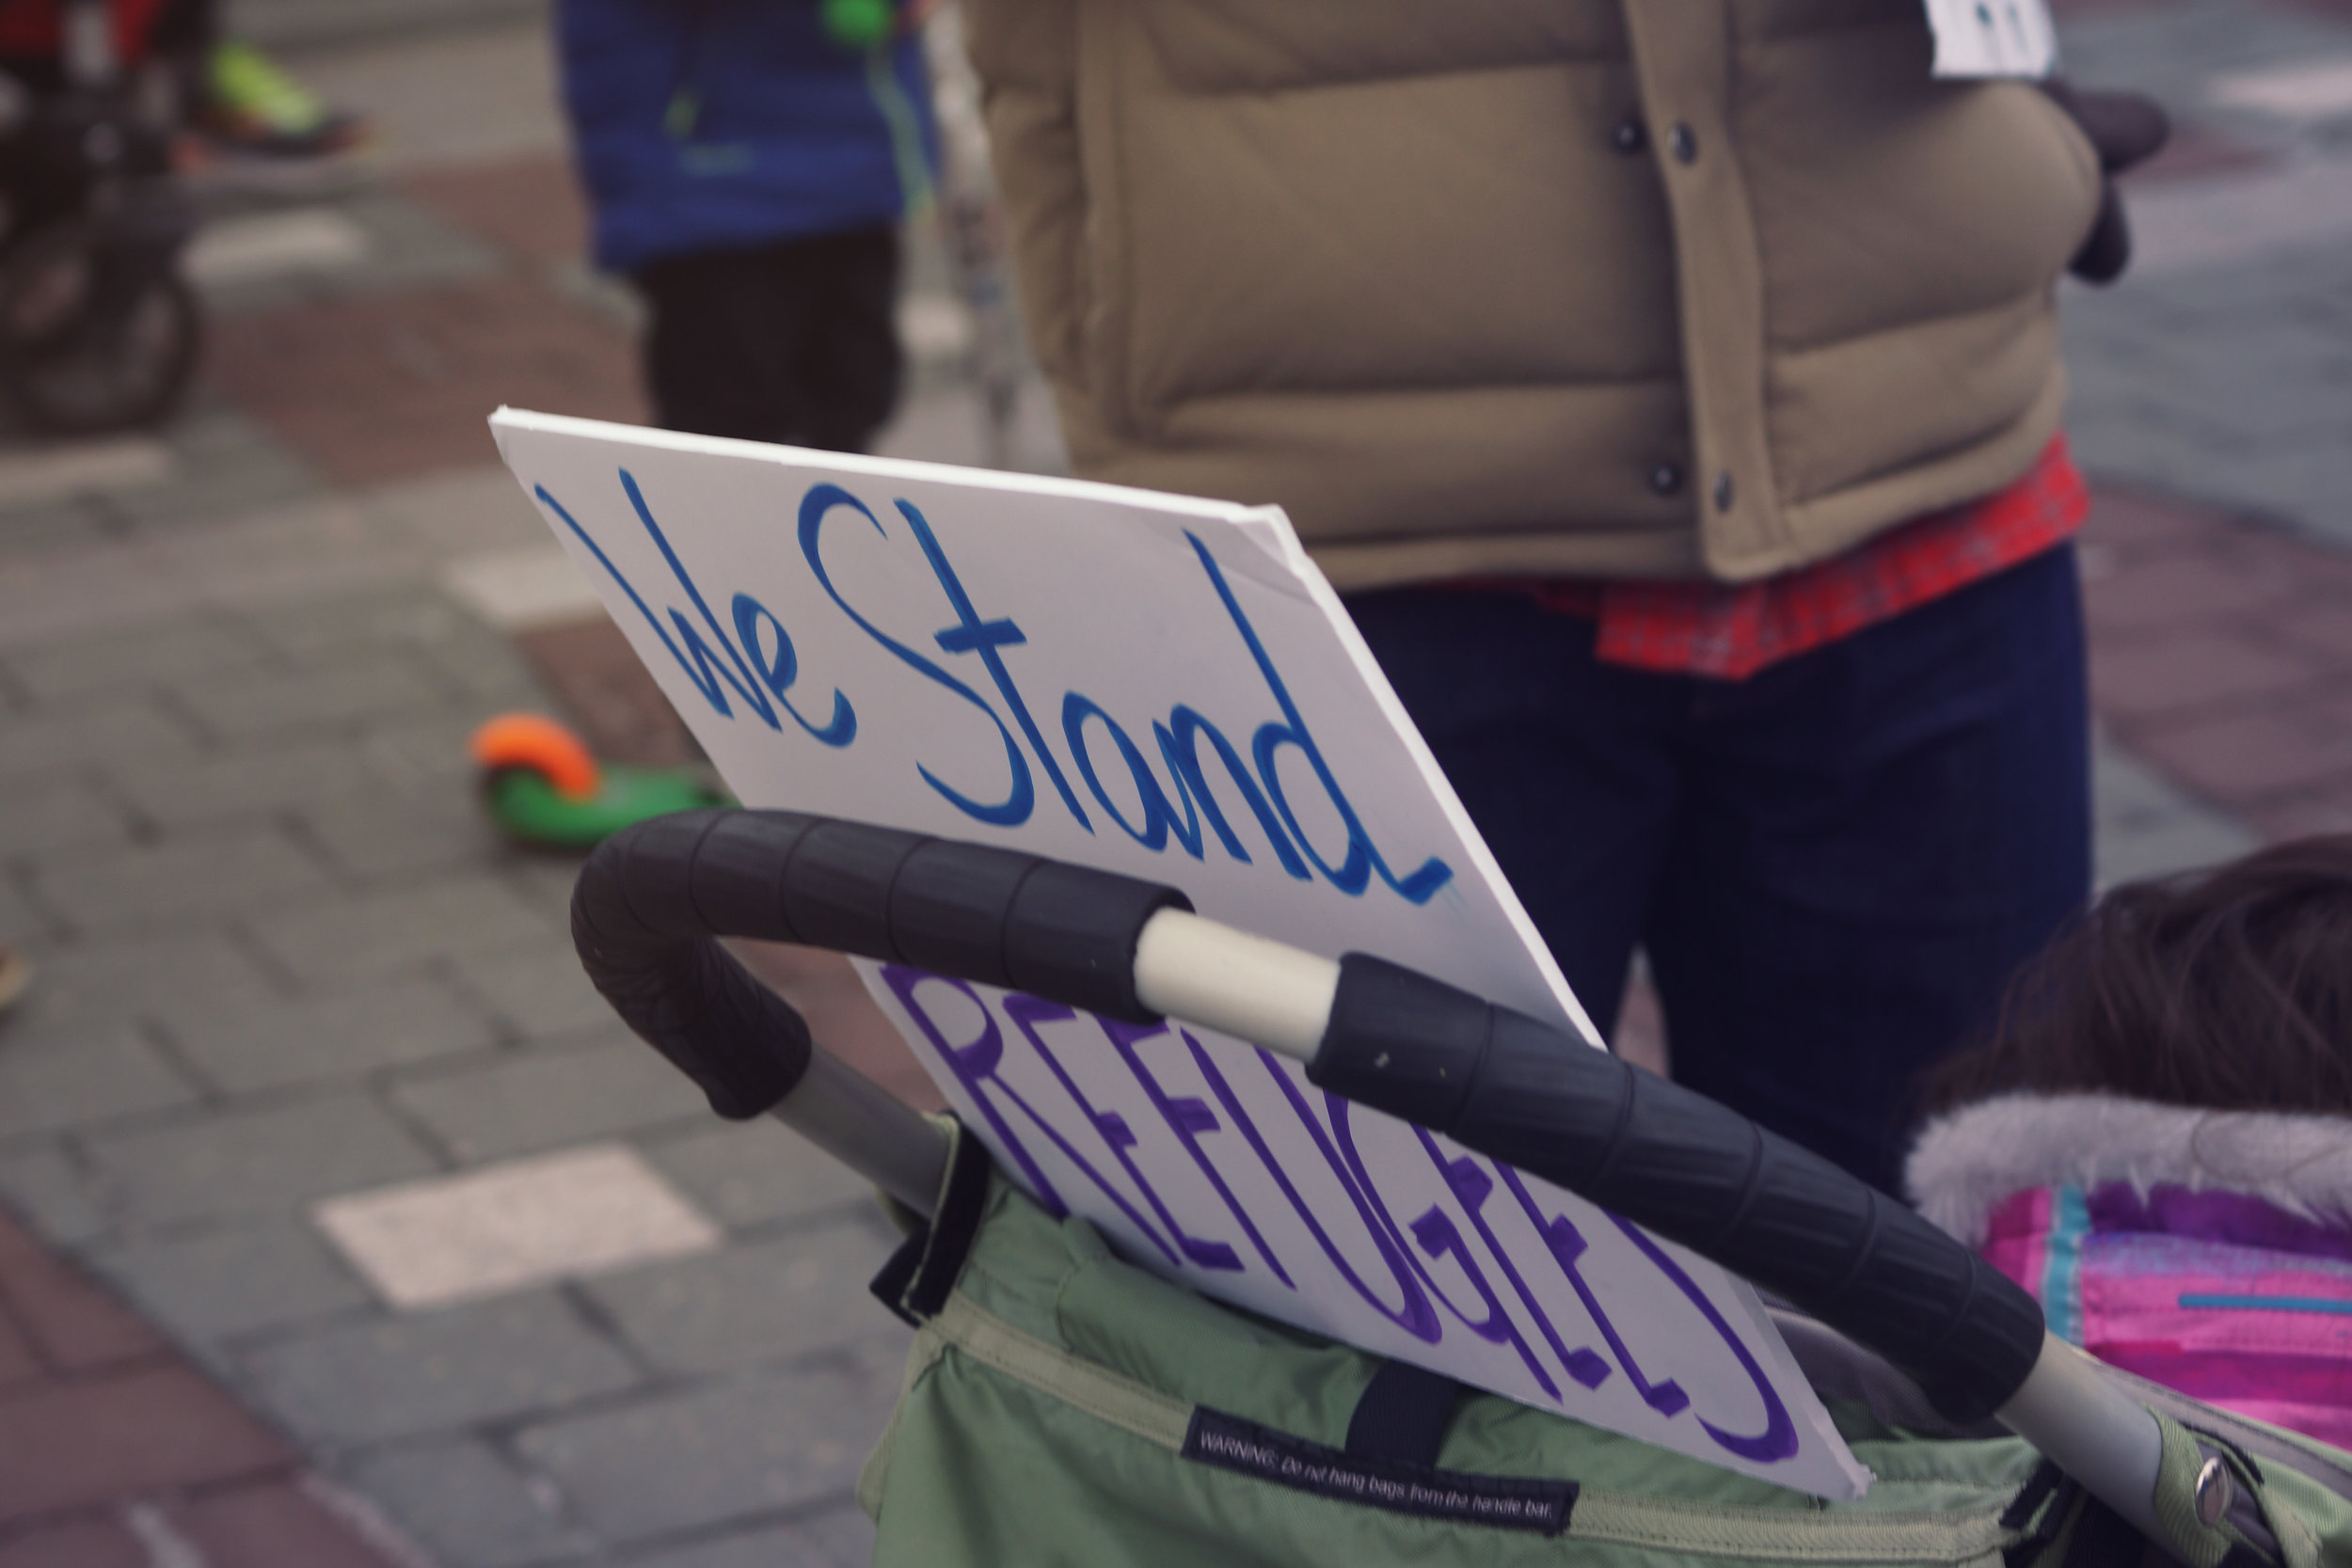 [Image Description: A sign sits at the top of a stroller behind a child's head. Seen clearly is 'We stand...Refugees.']